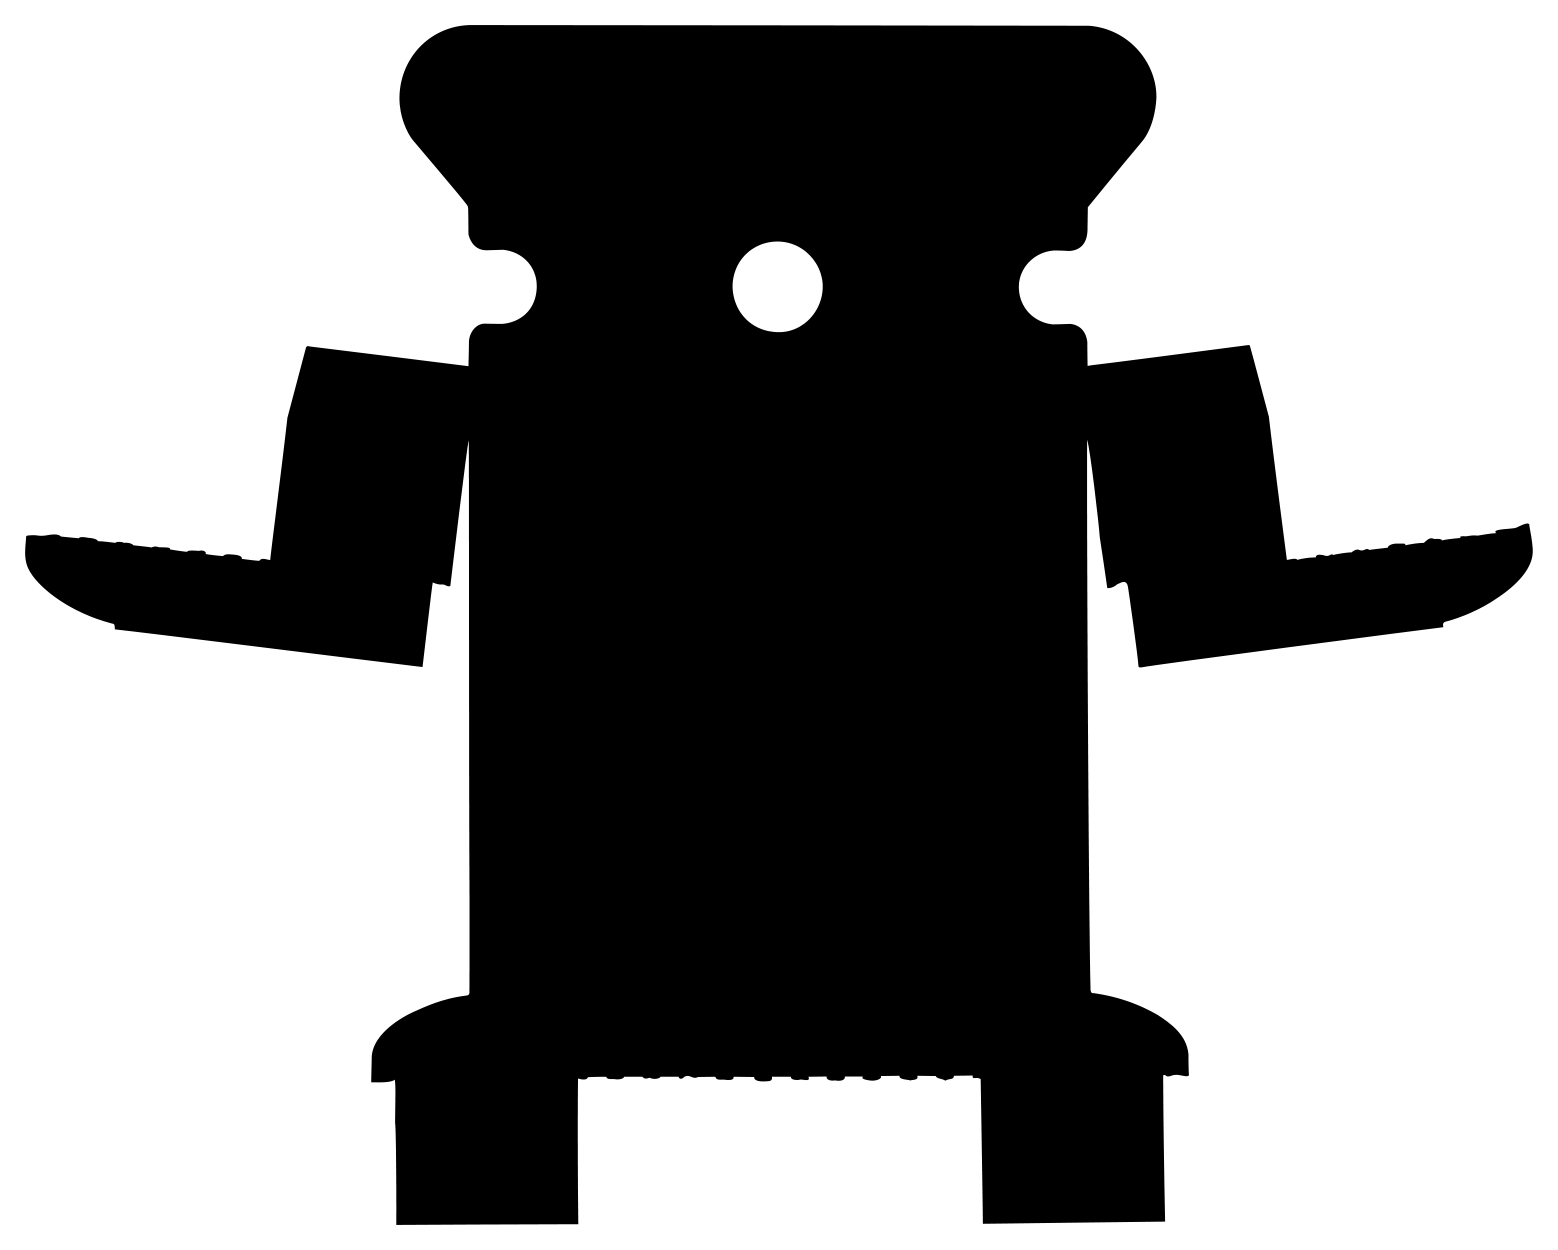 Seventh Generation Dish Soap BoxBot Silhouette